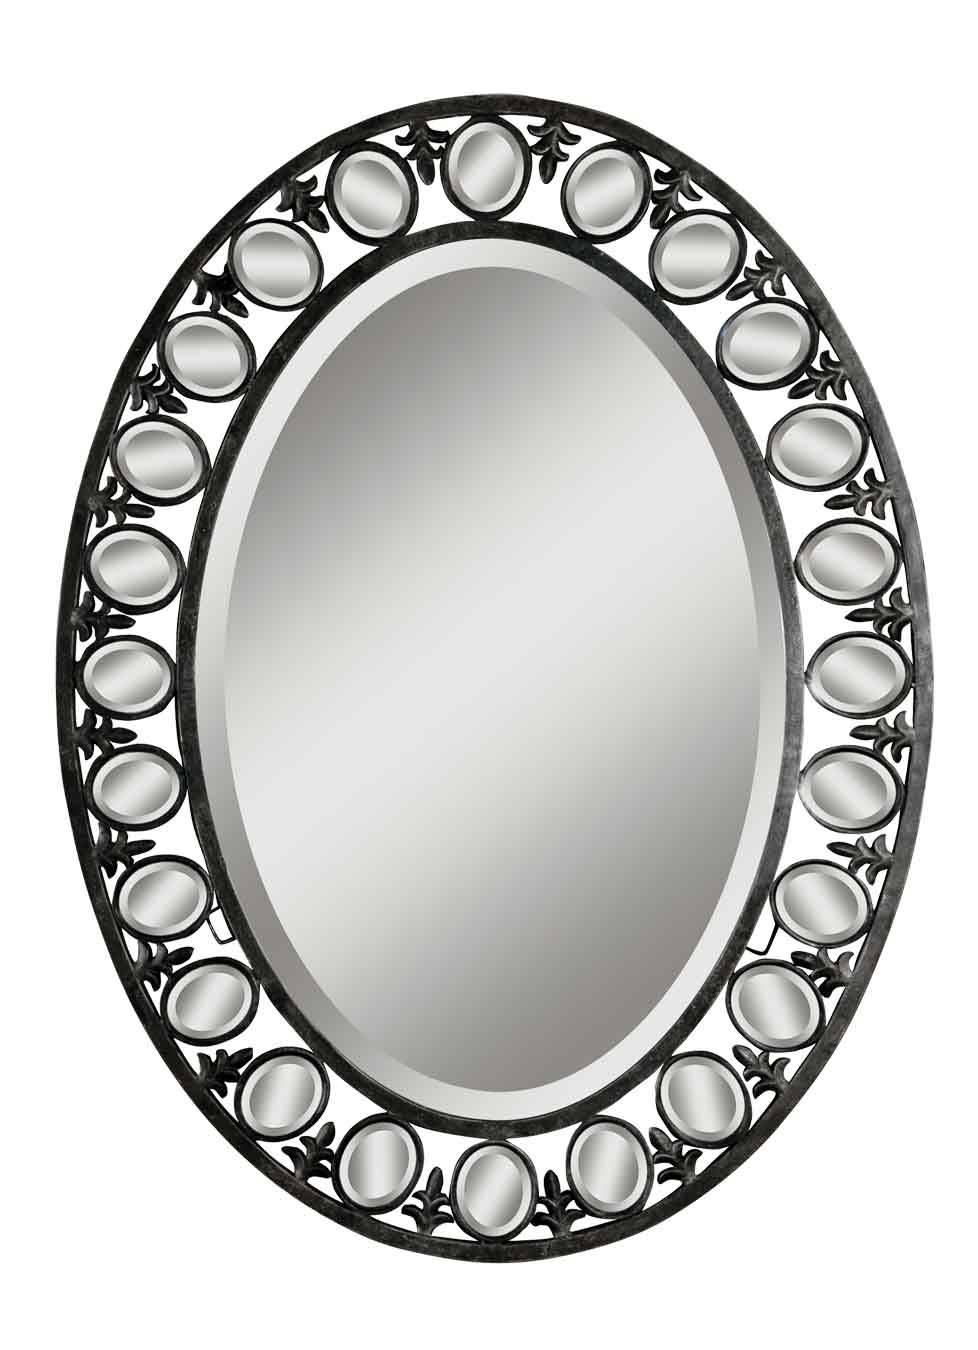 New Traditions Collection - Mirror Lady - Welcome To The Web's throughout Oval Black Mirrors (Image 14 of 25)